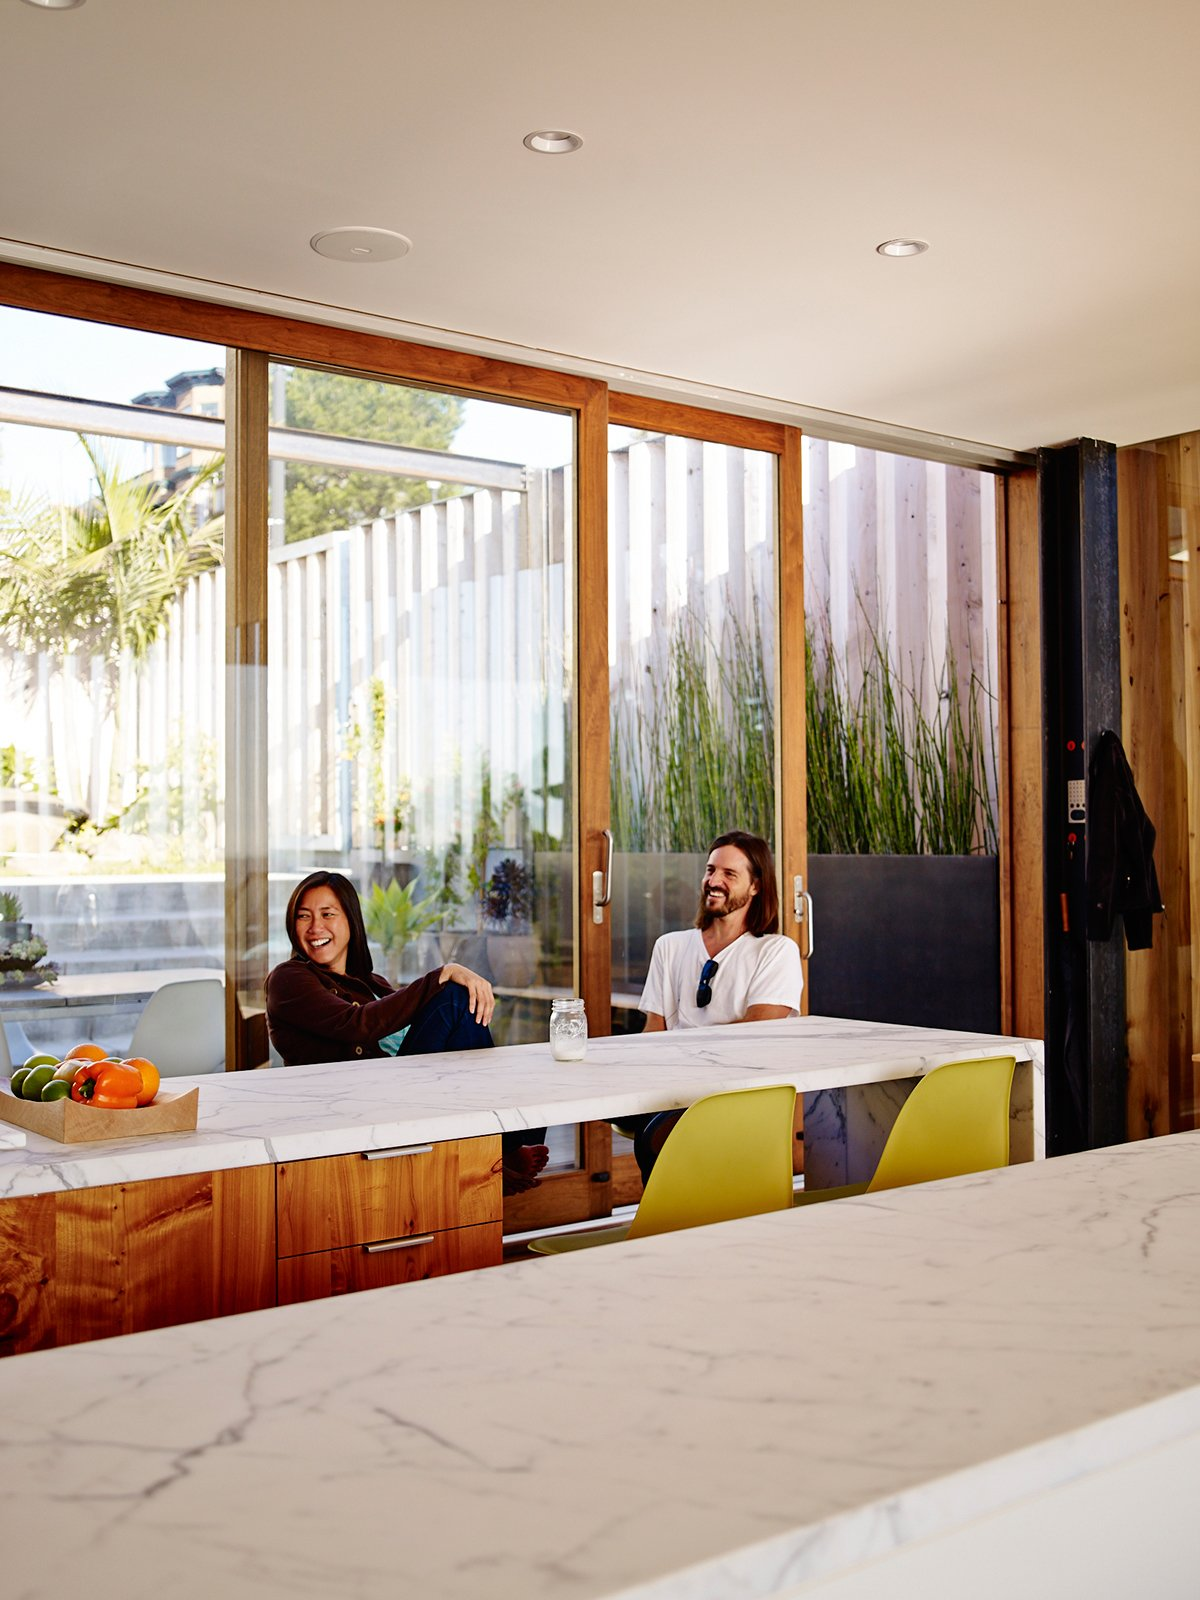 Architect Craig Steely has become fast friends with Russell-Clarke and Moolsintong. He hangs out in the kitchen and lives not far from the house. Tagged: Dining Room and Chair.  Photo 17 of 17 in Striking Slatted Wood and Glass Home in San Francisco